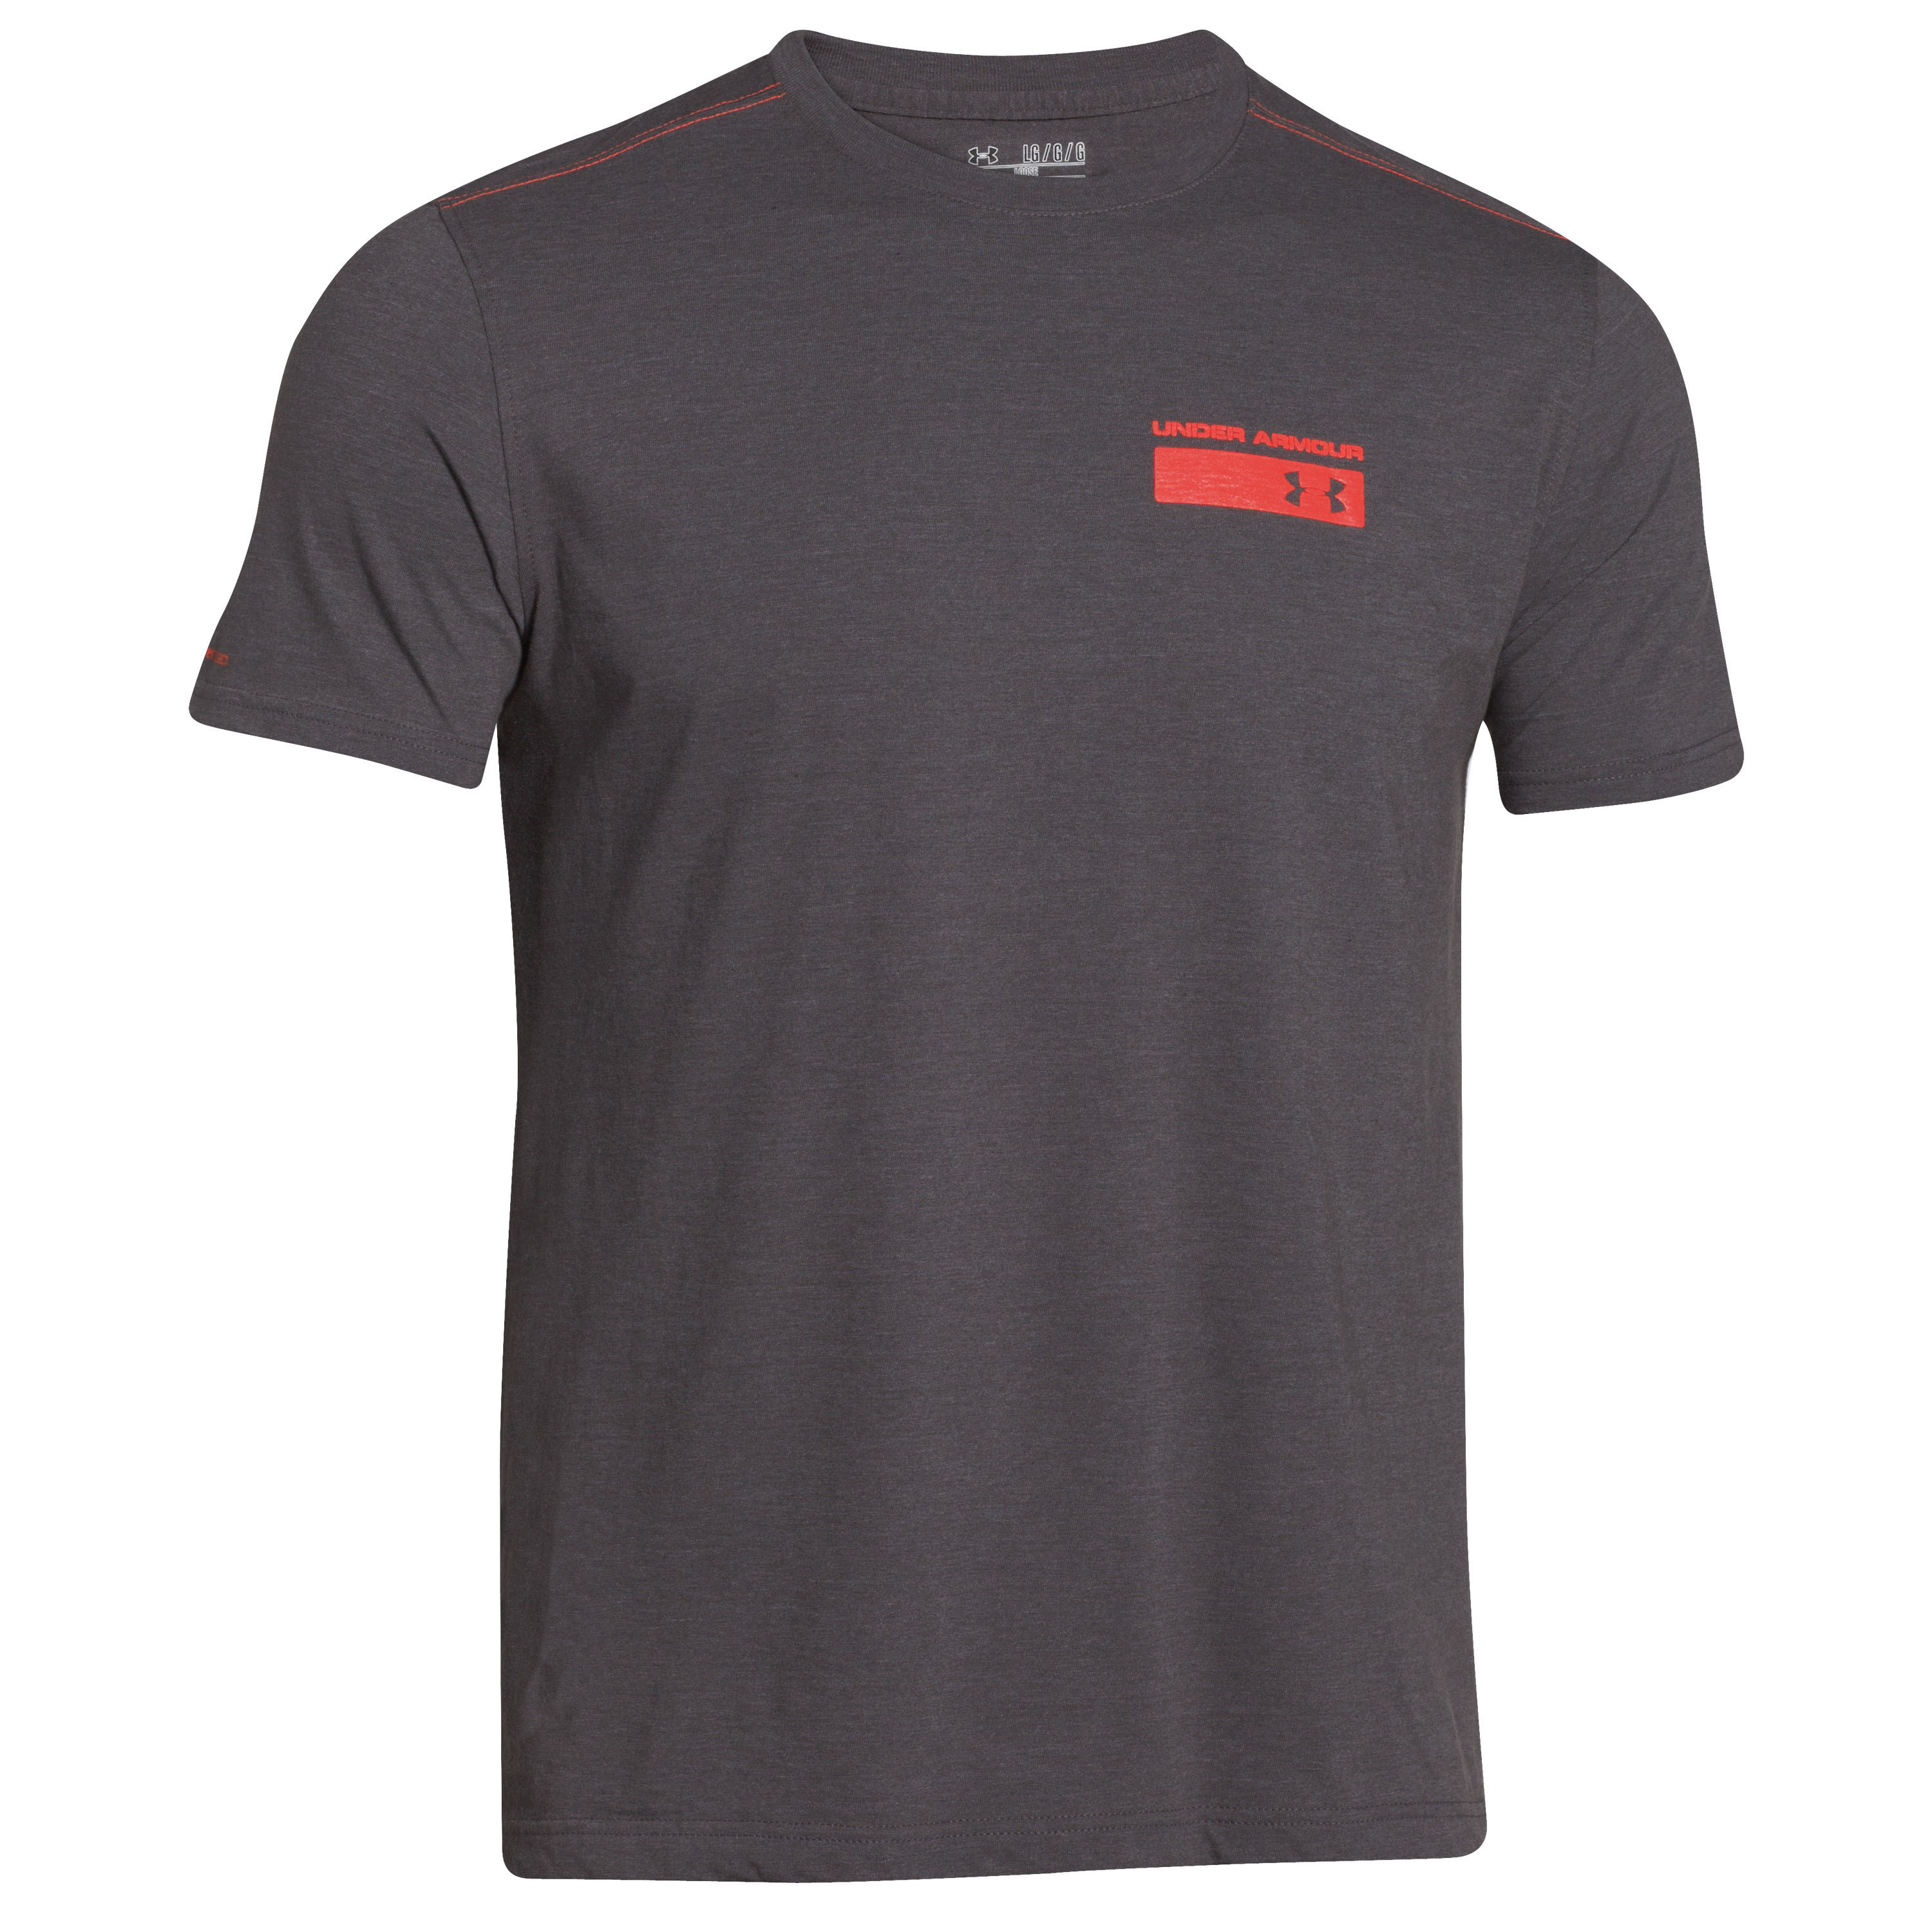 Under Armour Shirt Military Issue carbon